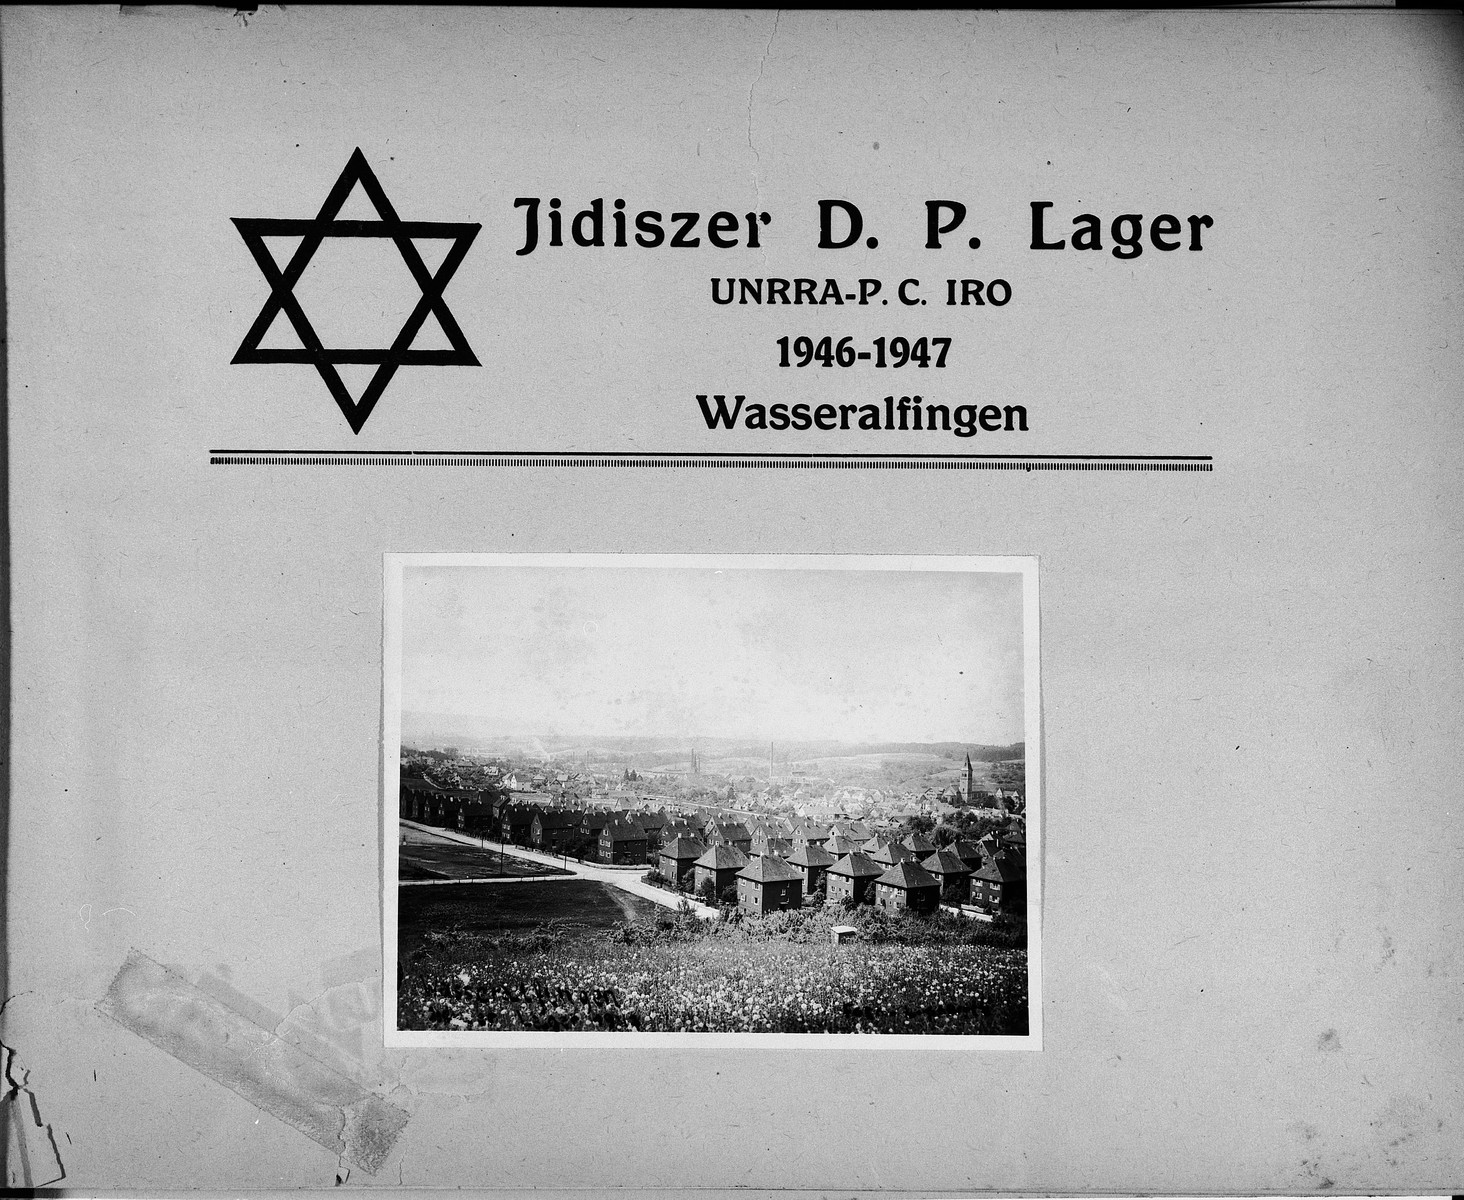 Title page of a presentation photo album of the Wasseralfingen DP camp, illustrated with a photo of an exterior view of the homes in the camp.